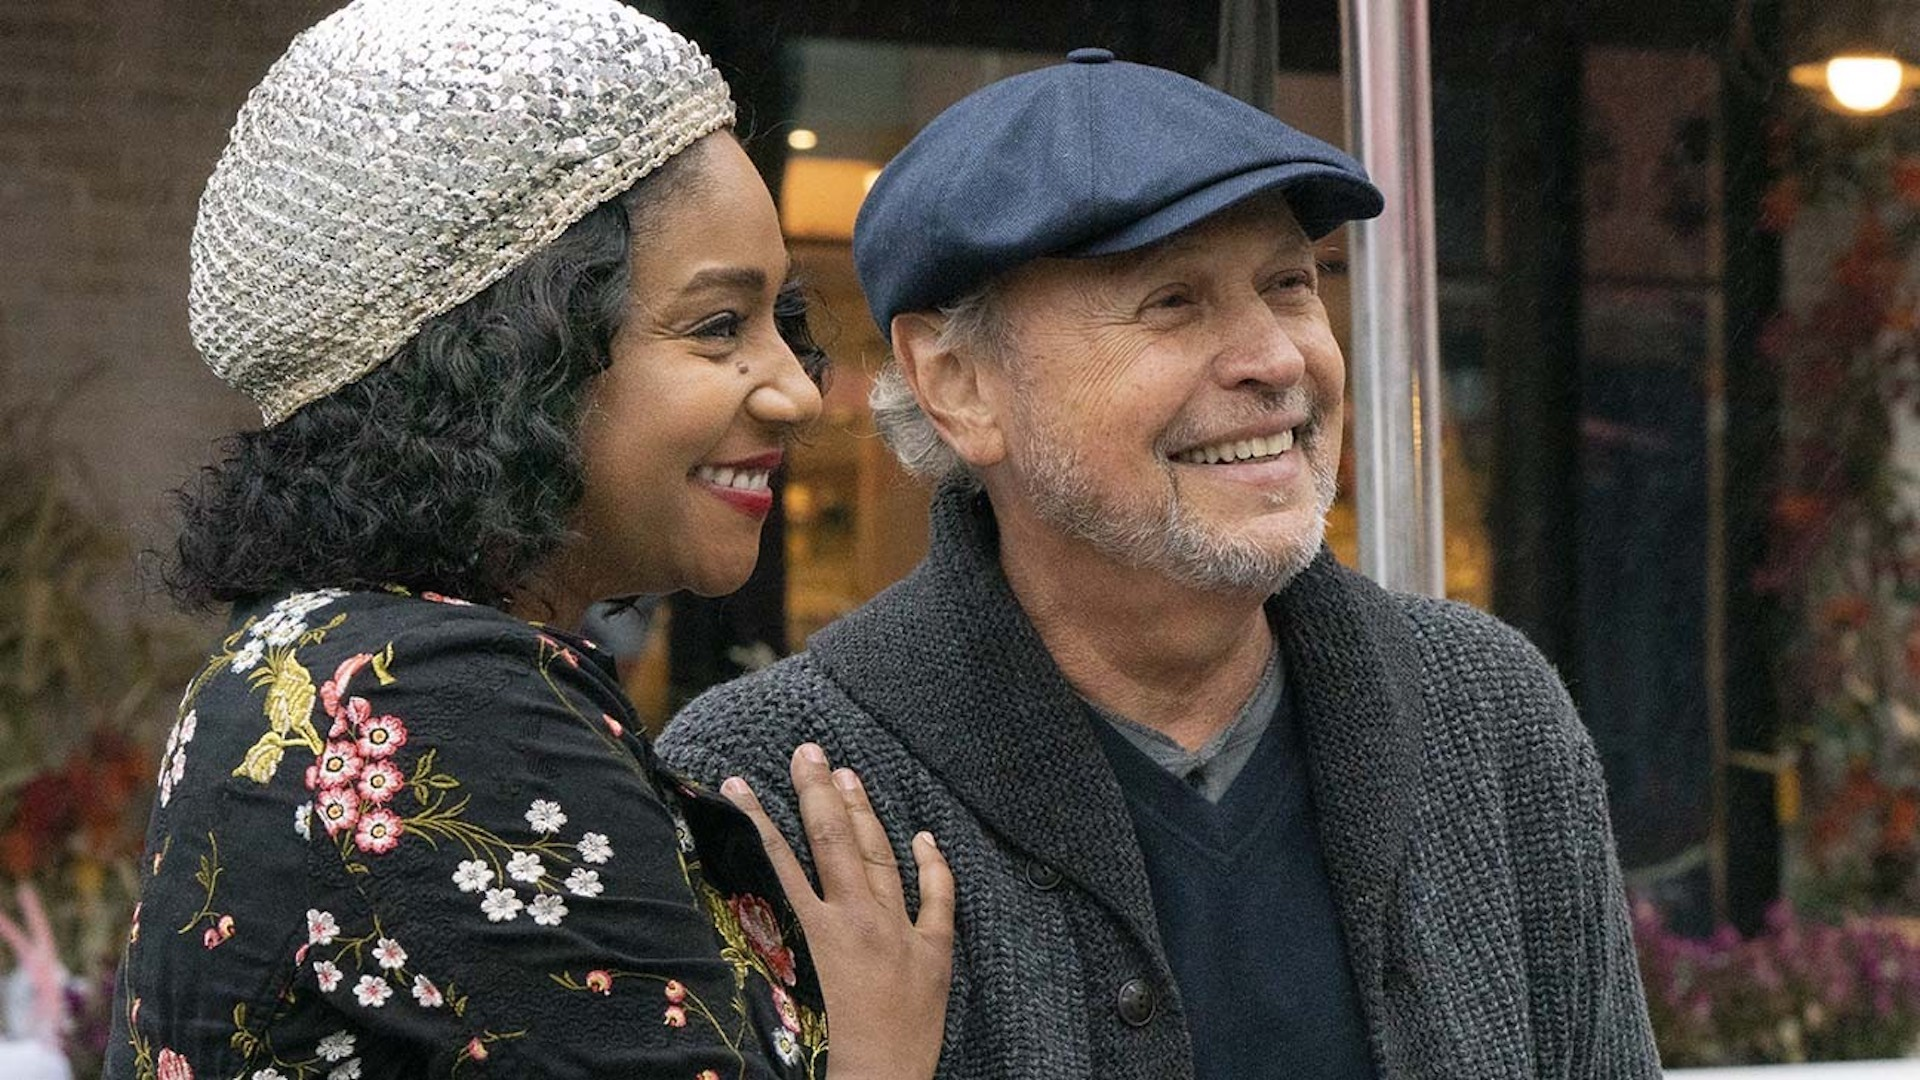 Billy Crystal and Tiffany Haddison Buddy Up For 'Here Today' Trailer | THR News